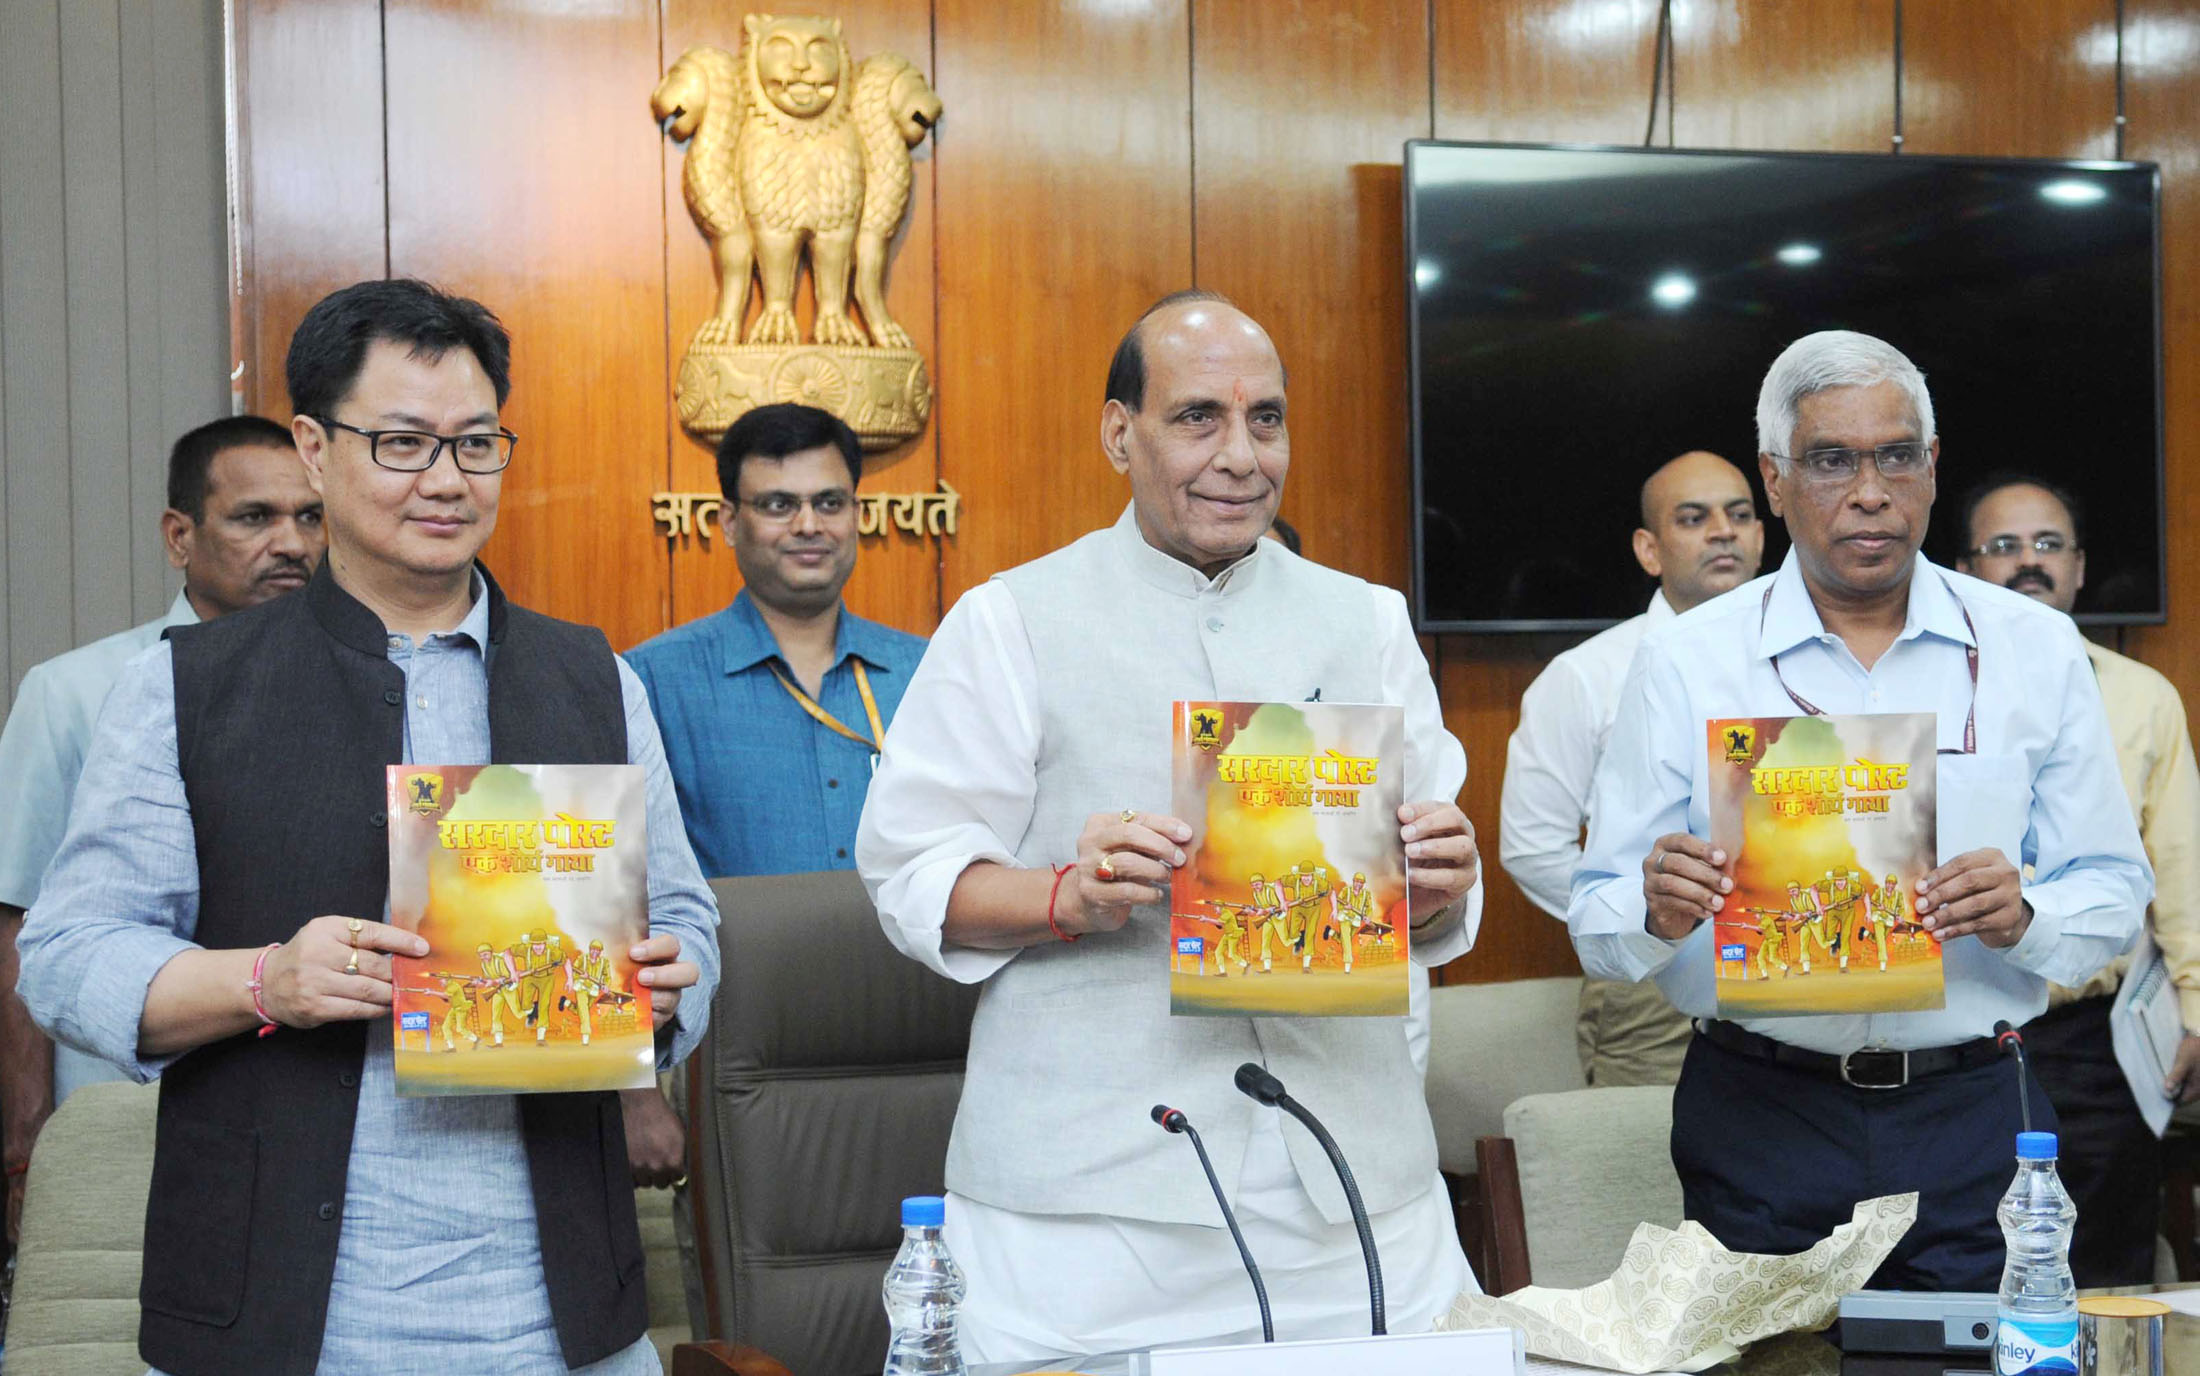 The Union Home Minister, Shri Rajnath Singh releasing a comic book the saga of Valour and sacrifice of CRPF at the Sardar Post, in New Delhi on September 24, 2015. The Minister of State for Home Affairs, Shri Kiren Rijiju is also seen.